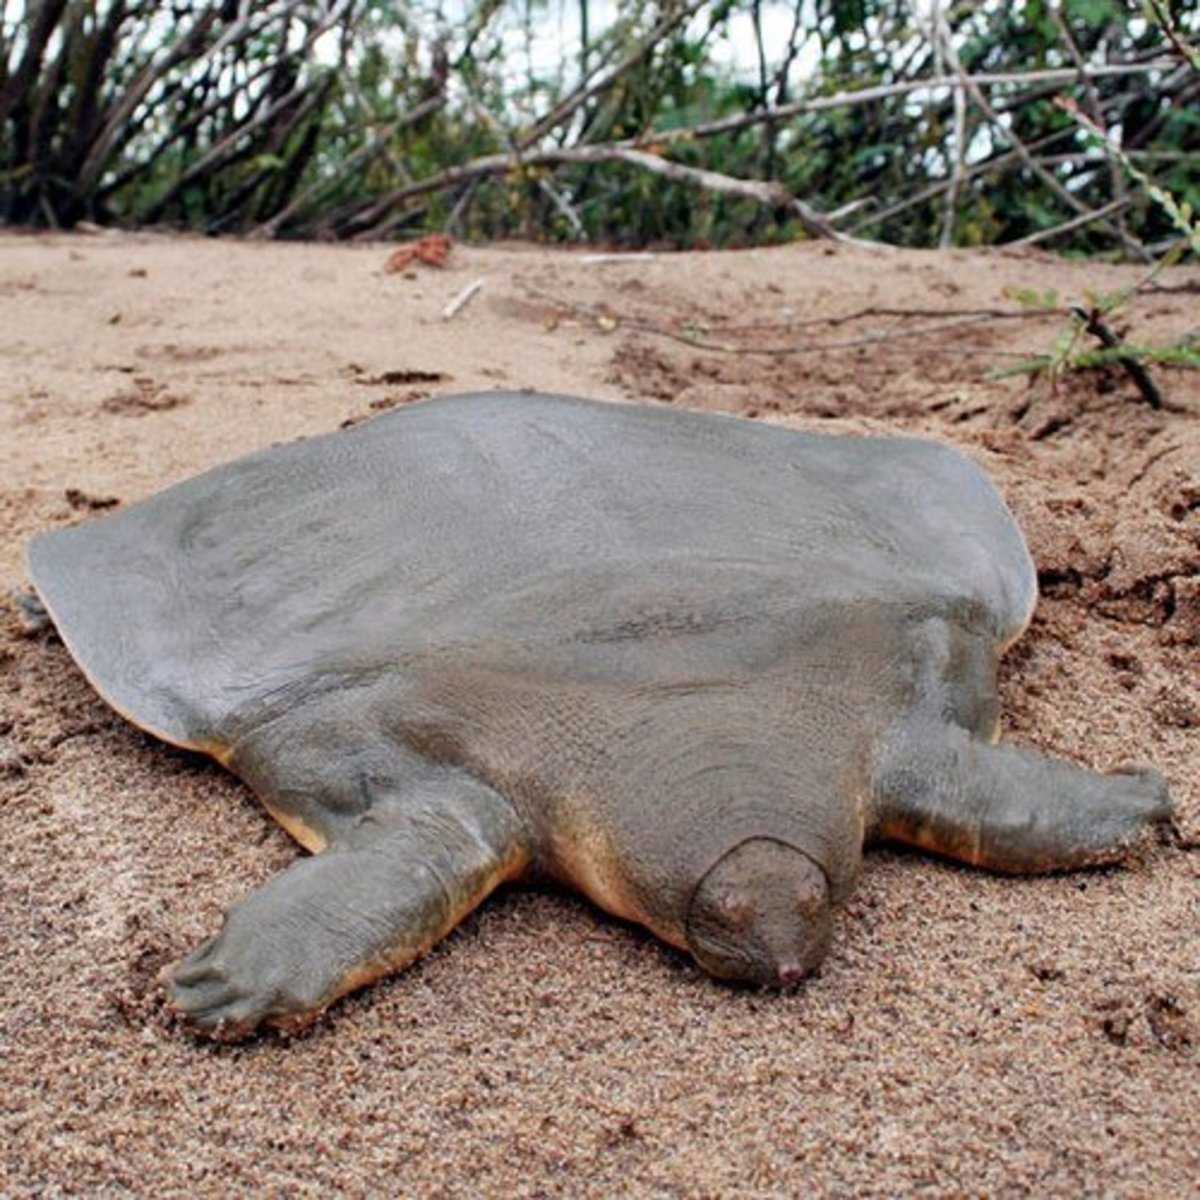 Frog-faced Soft Shell Turtle (Pelochelys cantorii)